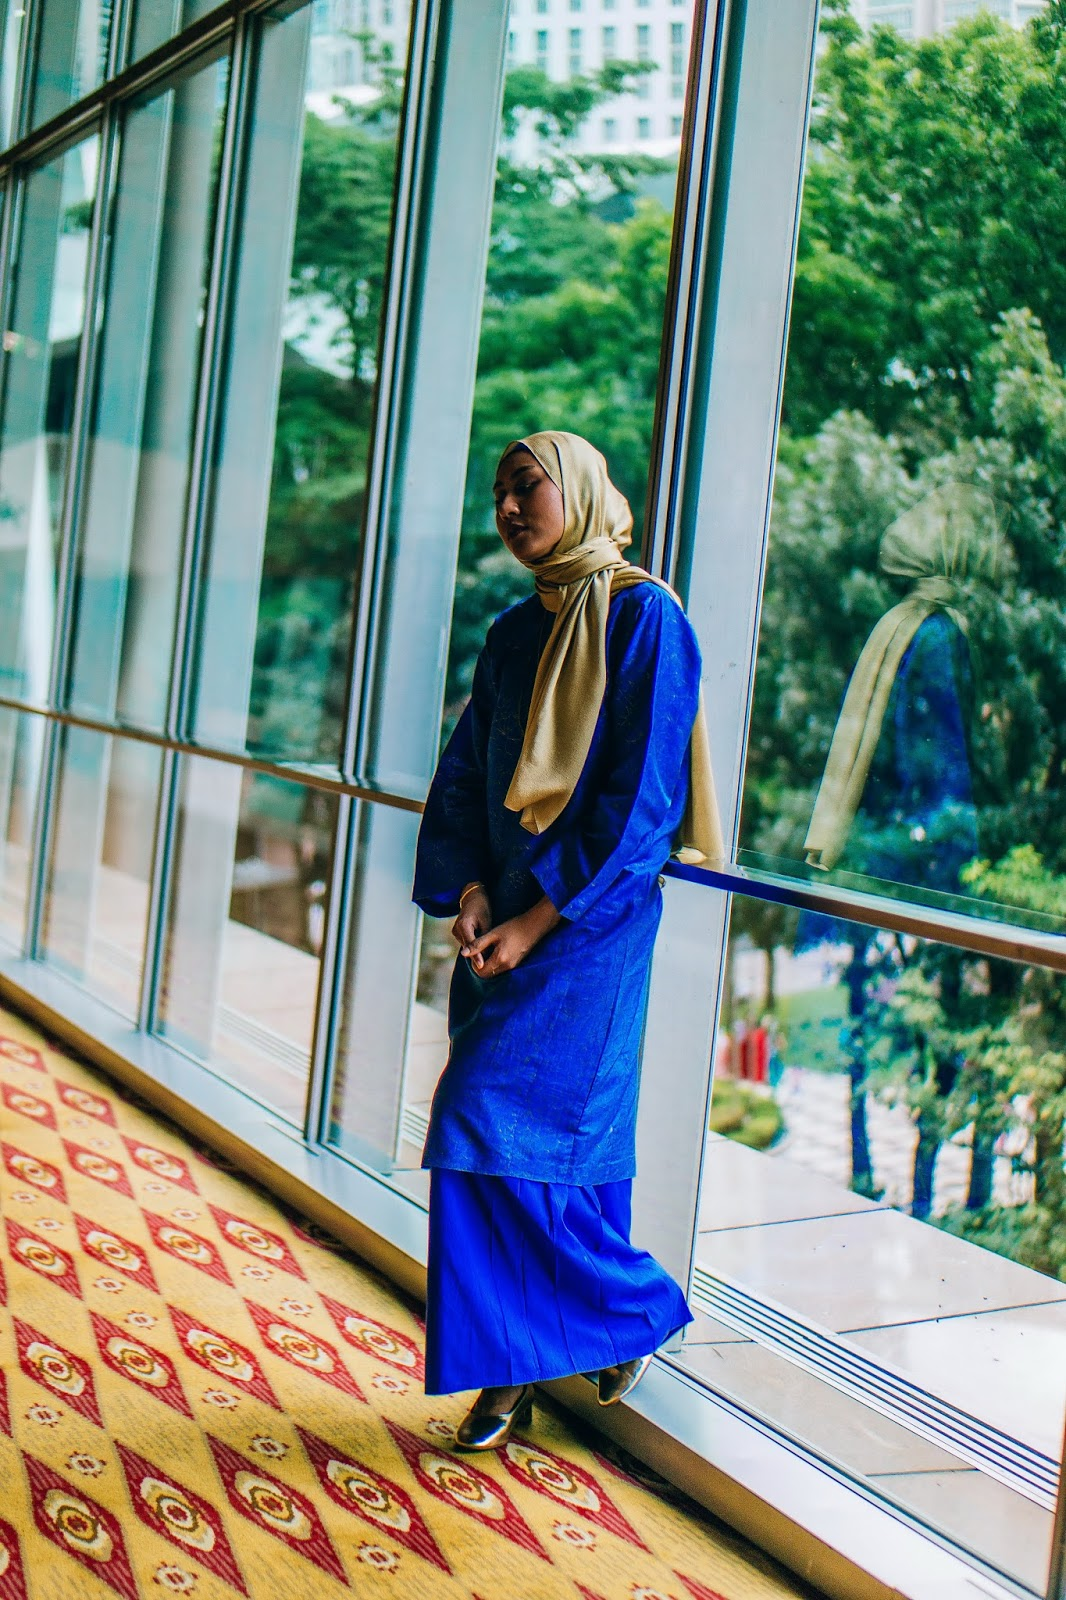 Electric blue traditional baju kurung Raya open house